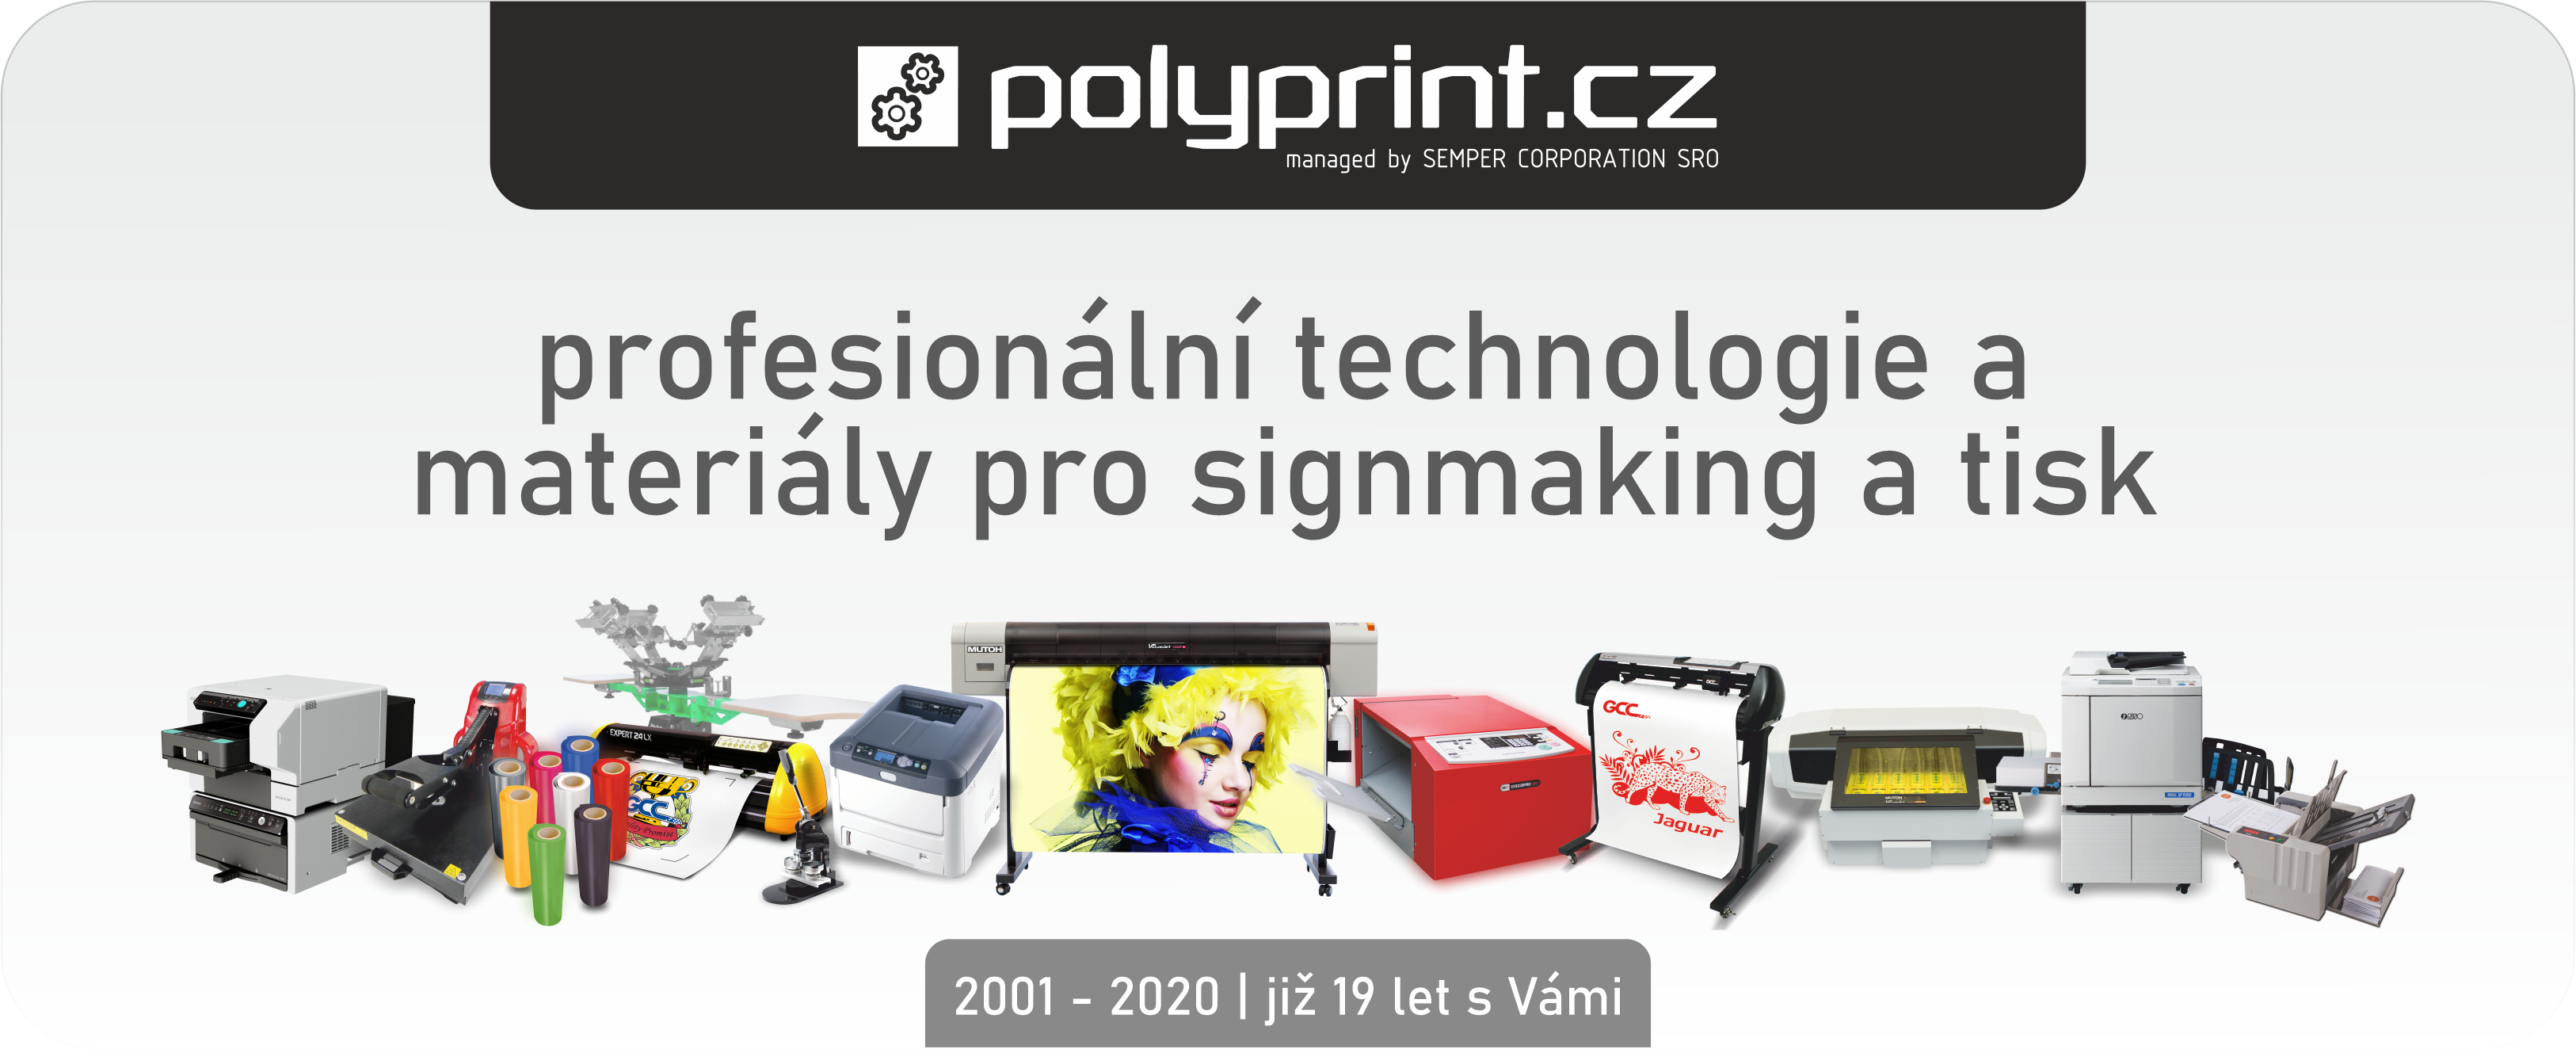 www.polyprint.cz | SEMPER CORPORATION SRO